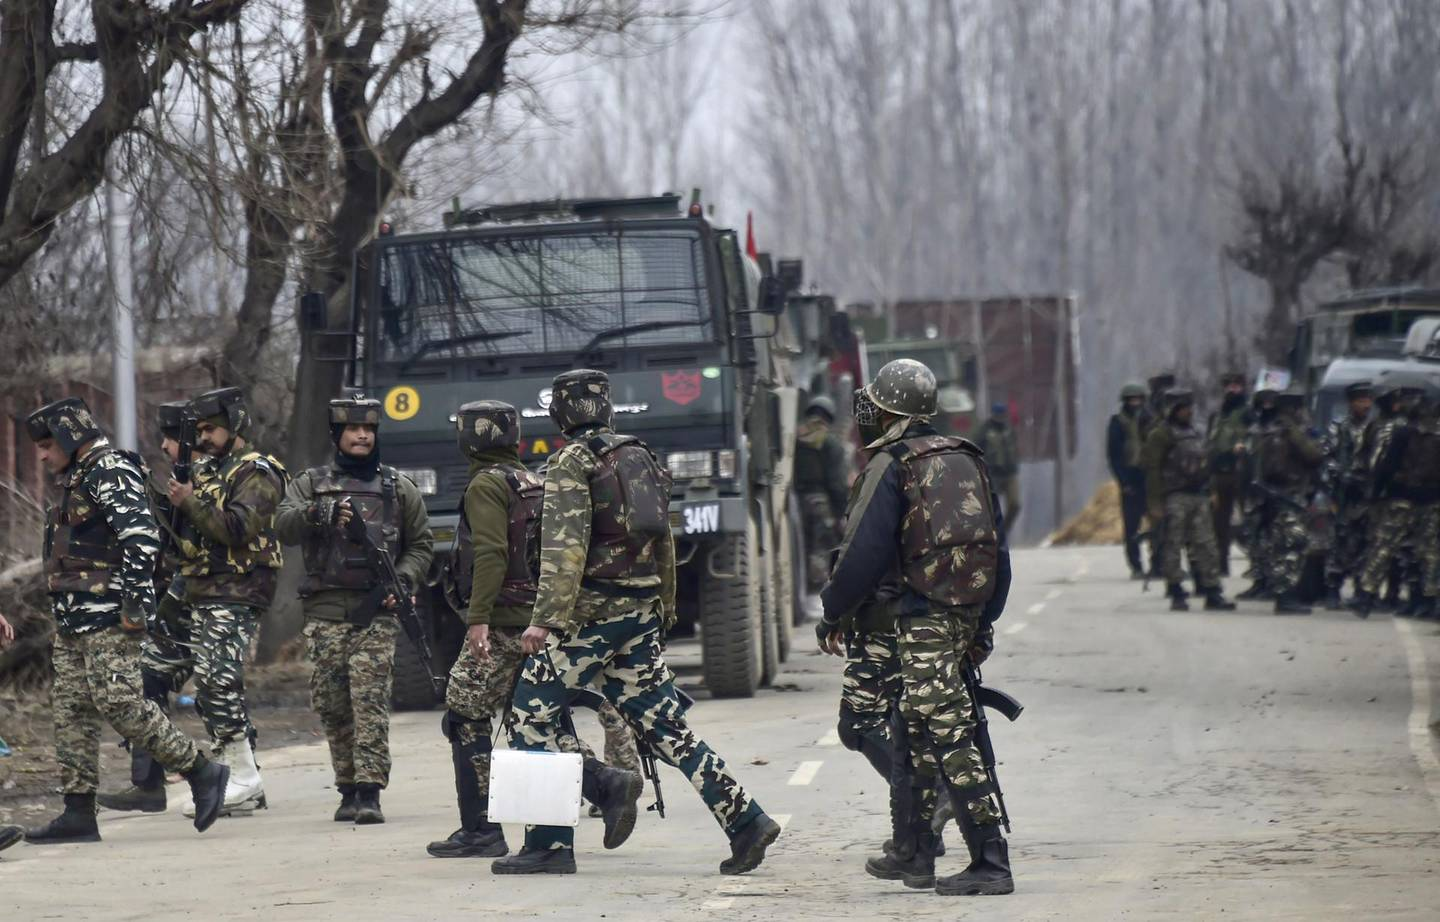 Indian security forces personnel are on manoeuvres as a gunfight with militants has happened that killed 4 soldiers, in South Kashmir's Pulwama district, some 10 km away from the spot of recent suicide bombing, on February 18, 2019. At least four soldiers died on February 18 in a fierce gunfight with rebels in Indian-administered Kashmir just four days after a suicide bomber killed 41 paramilitaries in the troubled territory, officials said. One soldier and one civilian were also critically wounded in the shootout as troops launched a search operation in Pulwama district where the suicide bomber struck on February 14. / AFP / STR